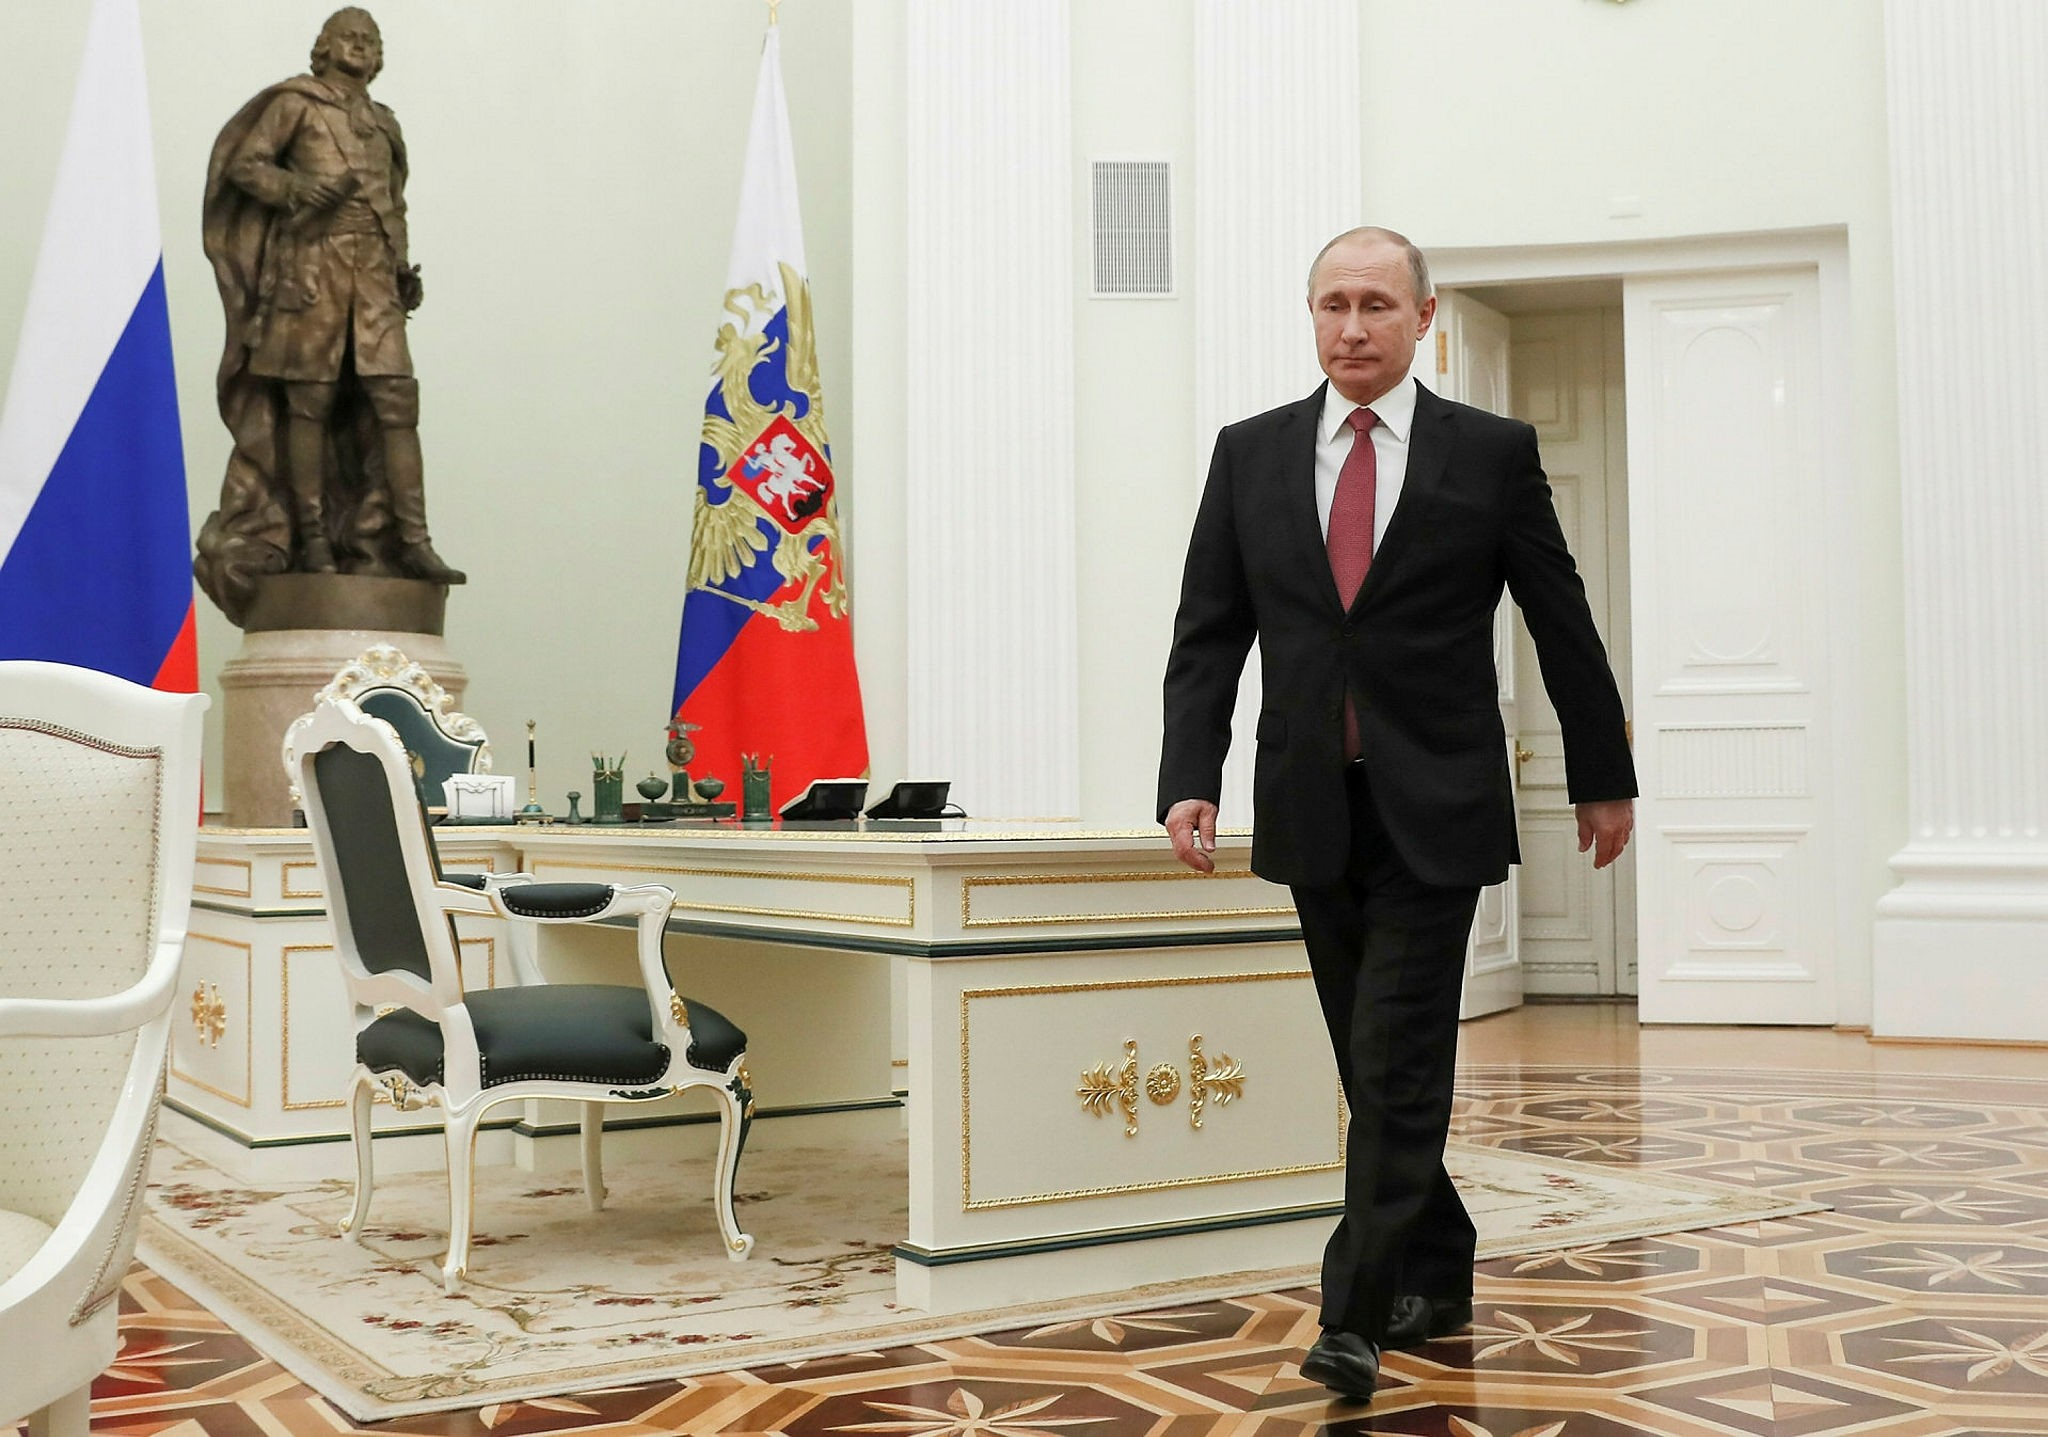 Russian President Vladimir Putin enters a hall to meet his Serbian counterpart Aleksandar Vucic during prior to their talks in the Kremlin in Moscow, Russia, Tuesday, Dec. 19, 2017. (AP Photo)